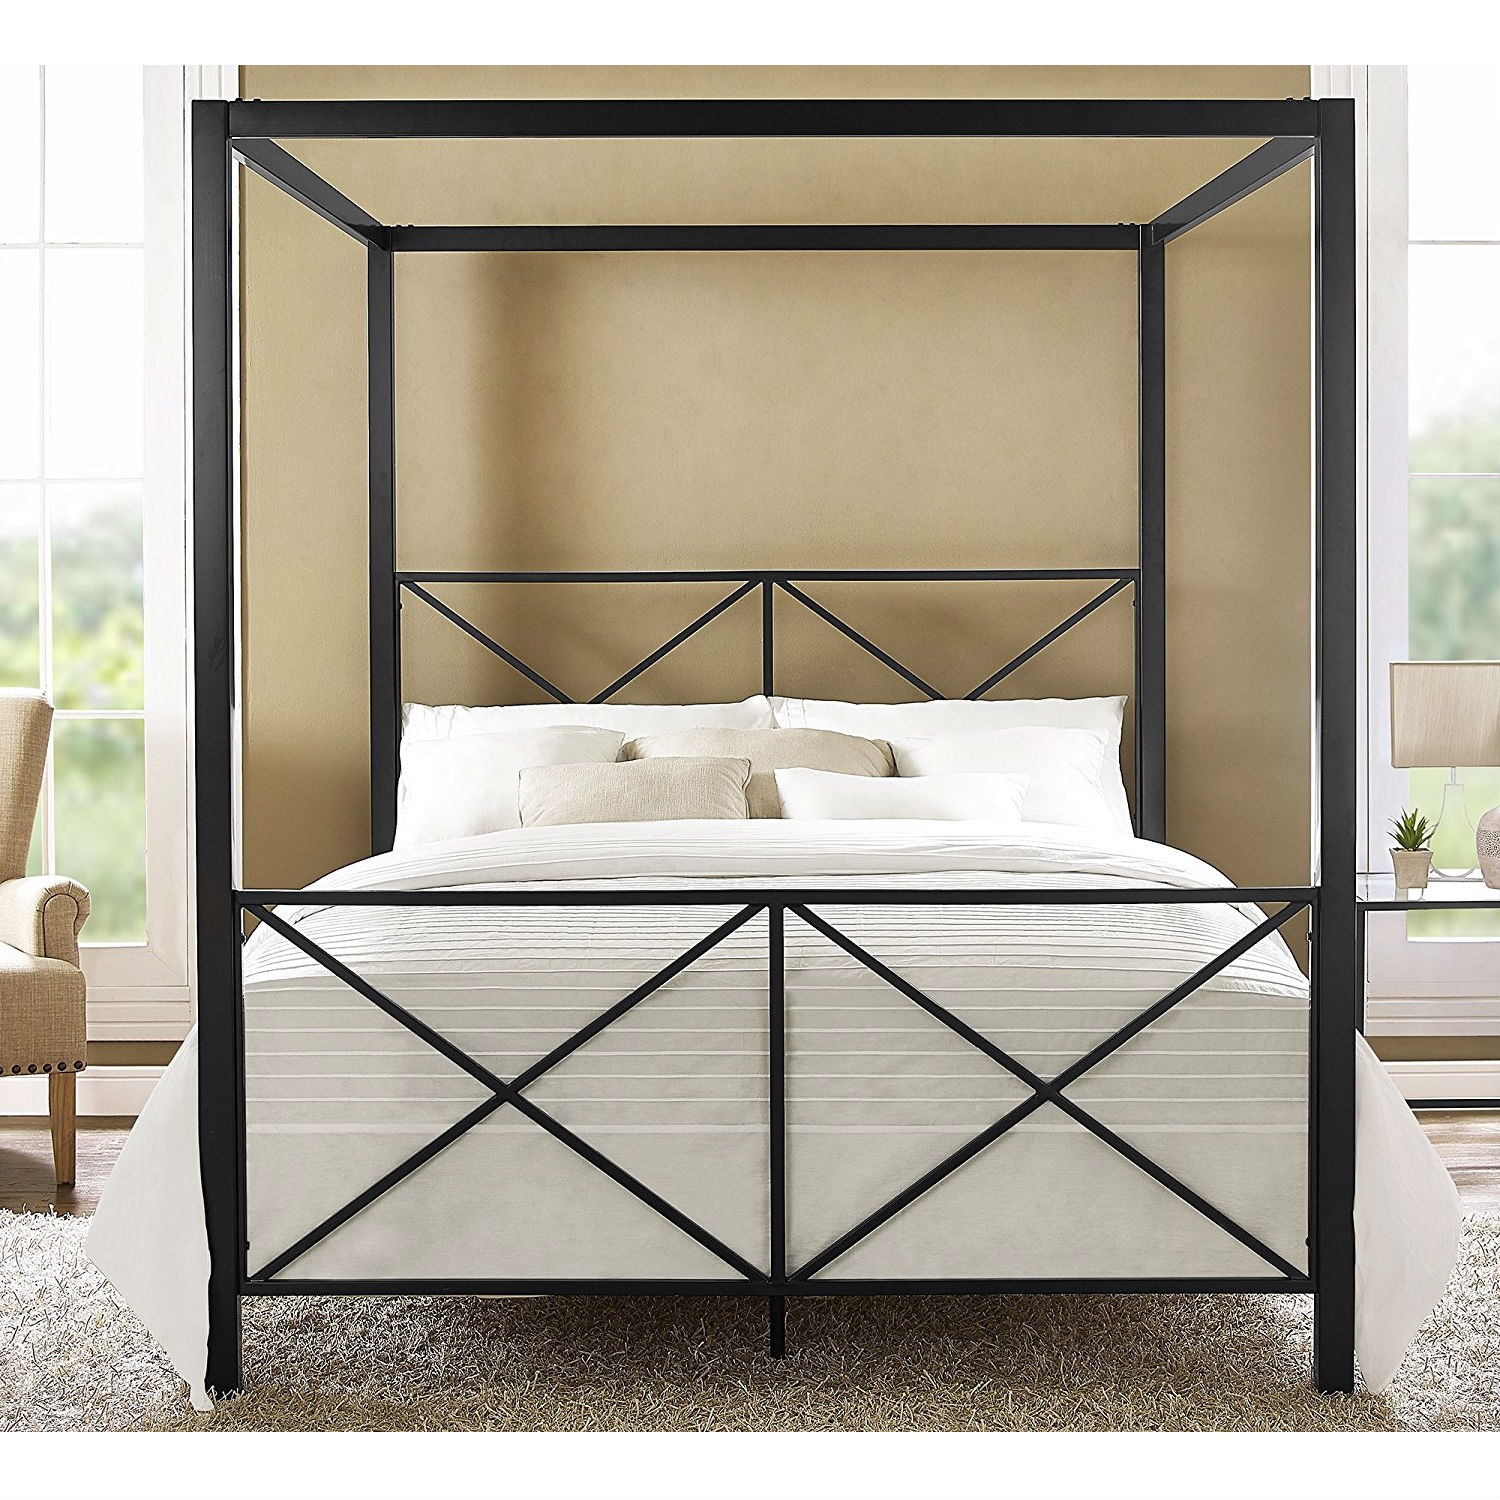 Queen Size 4 Post Metal Canopy Bed Frame In Black Fastfurnishings Com